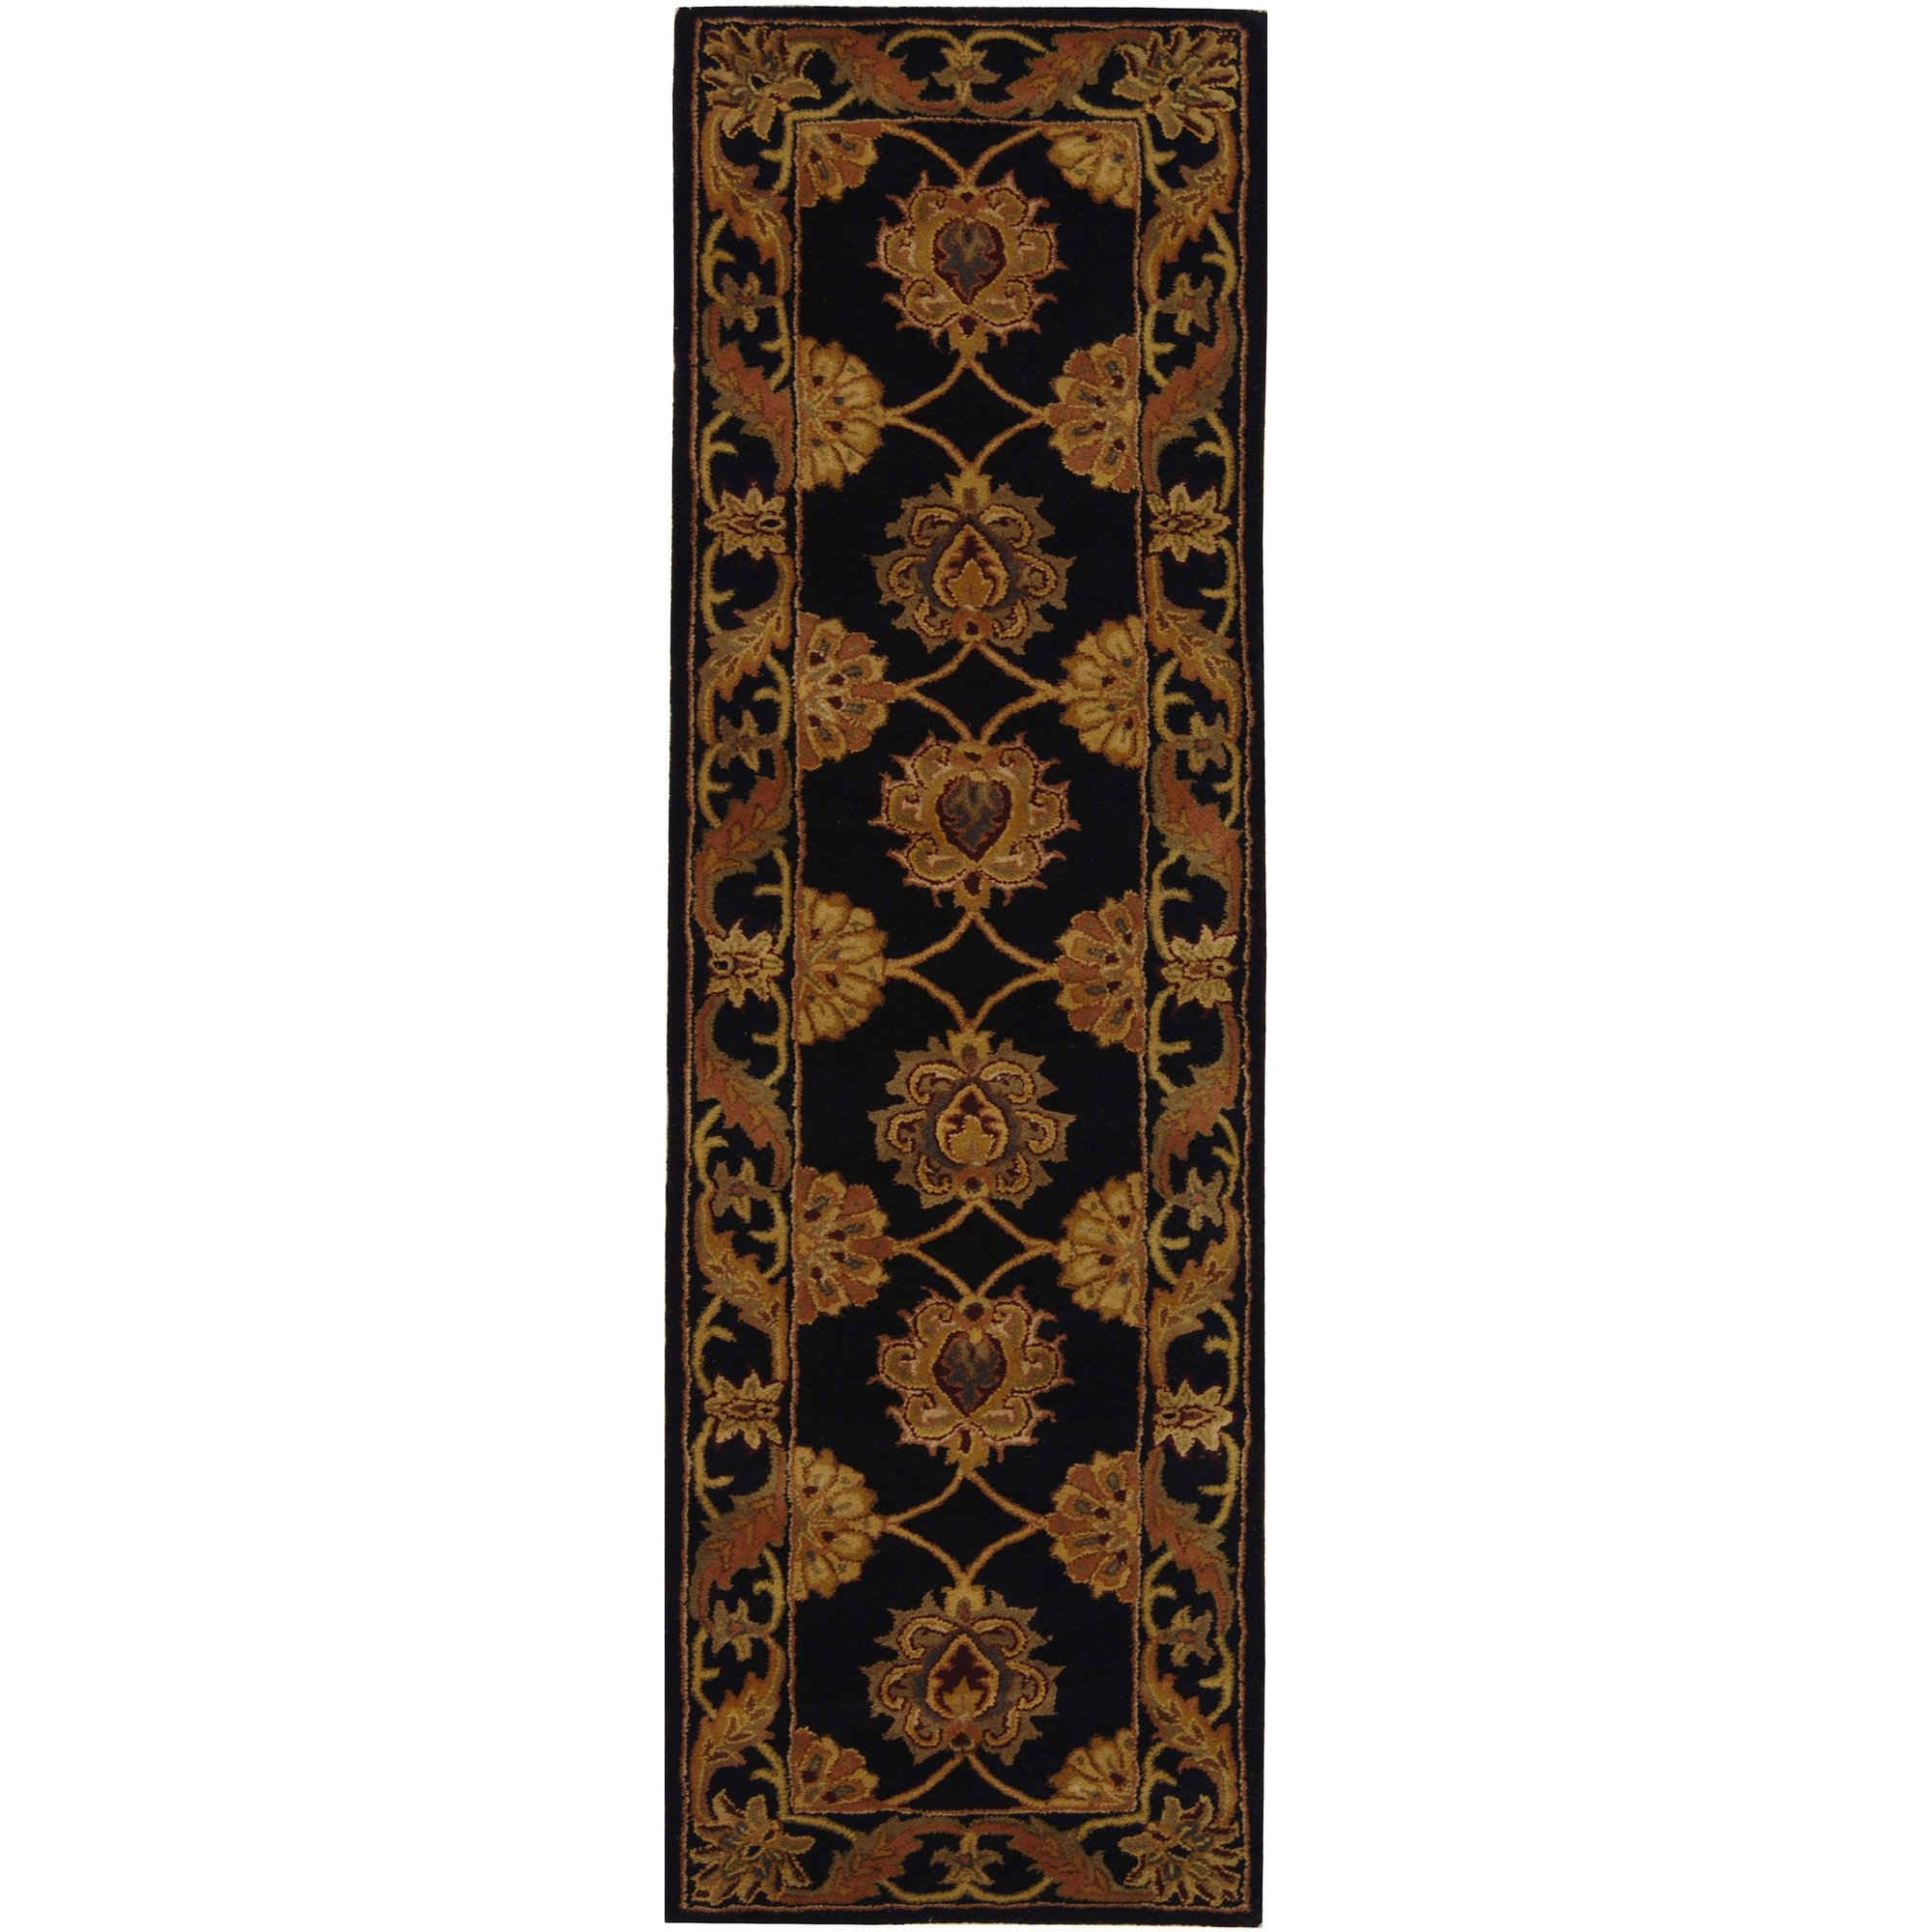 Safavieh Heritage Collection HG314A Handcrafted Traditional Oriental Black Wool Runner (2'3'' x 10') by Safavieh